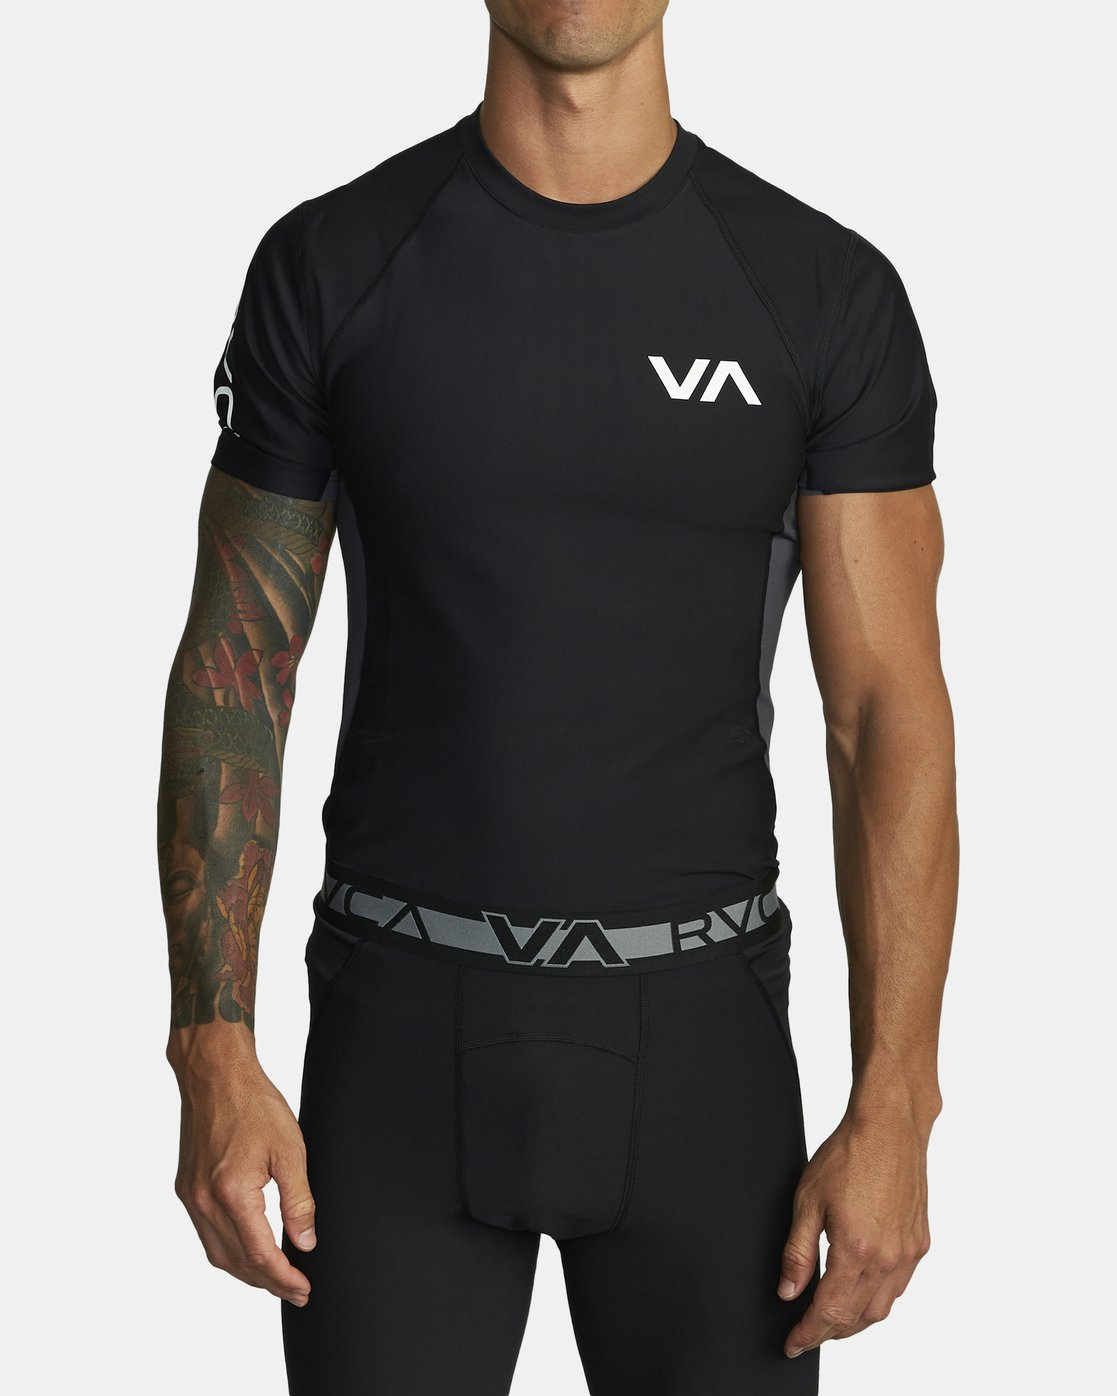 0 COMPRESSION SHORT SLEEVE TOP Black VR021RCS RVCA